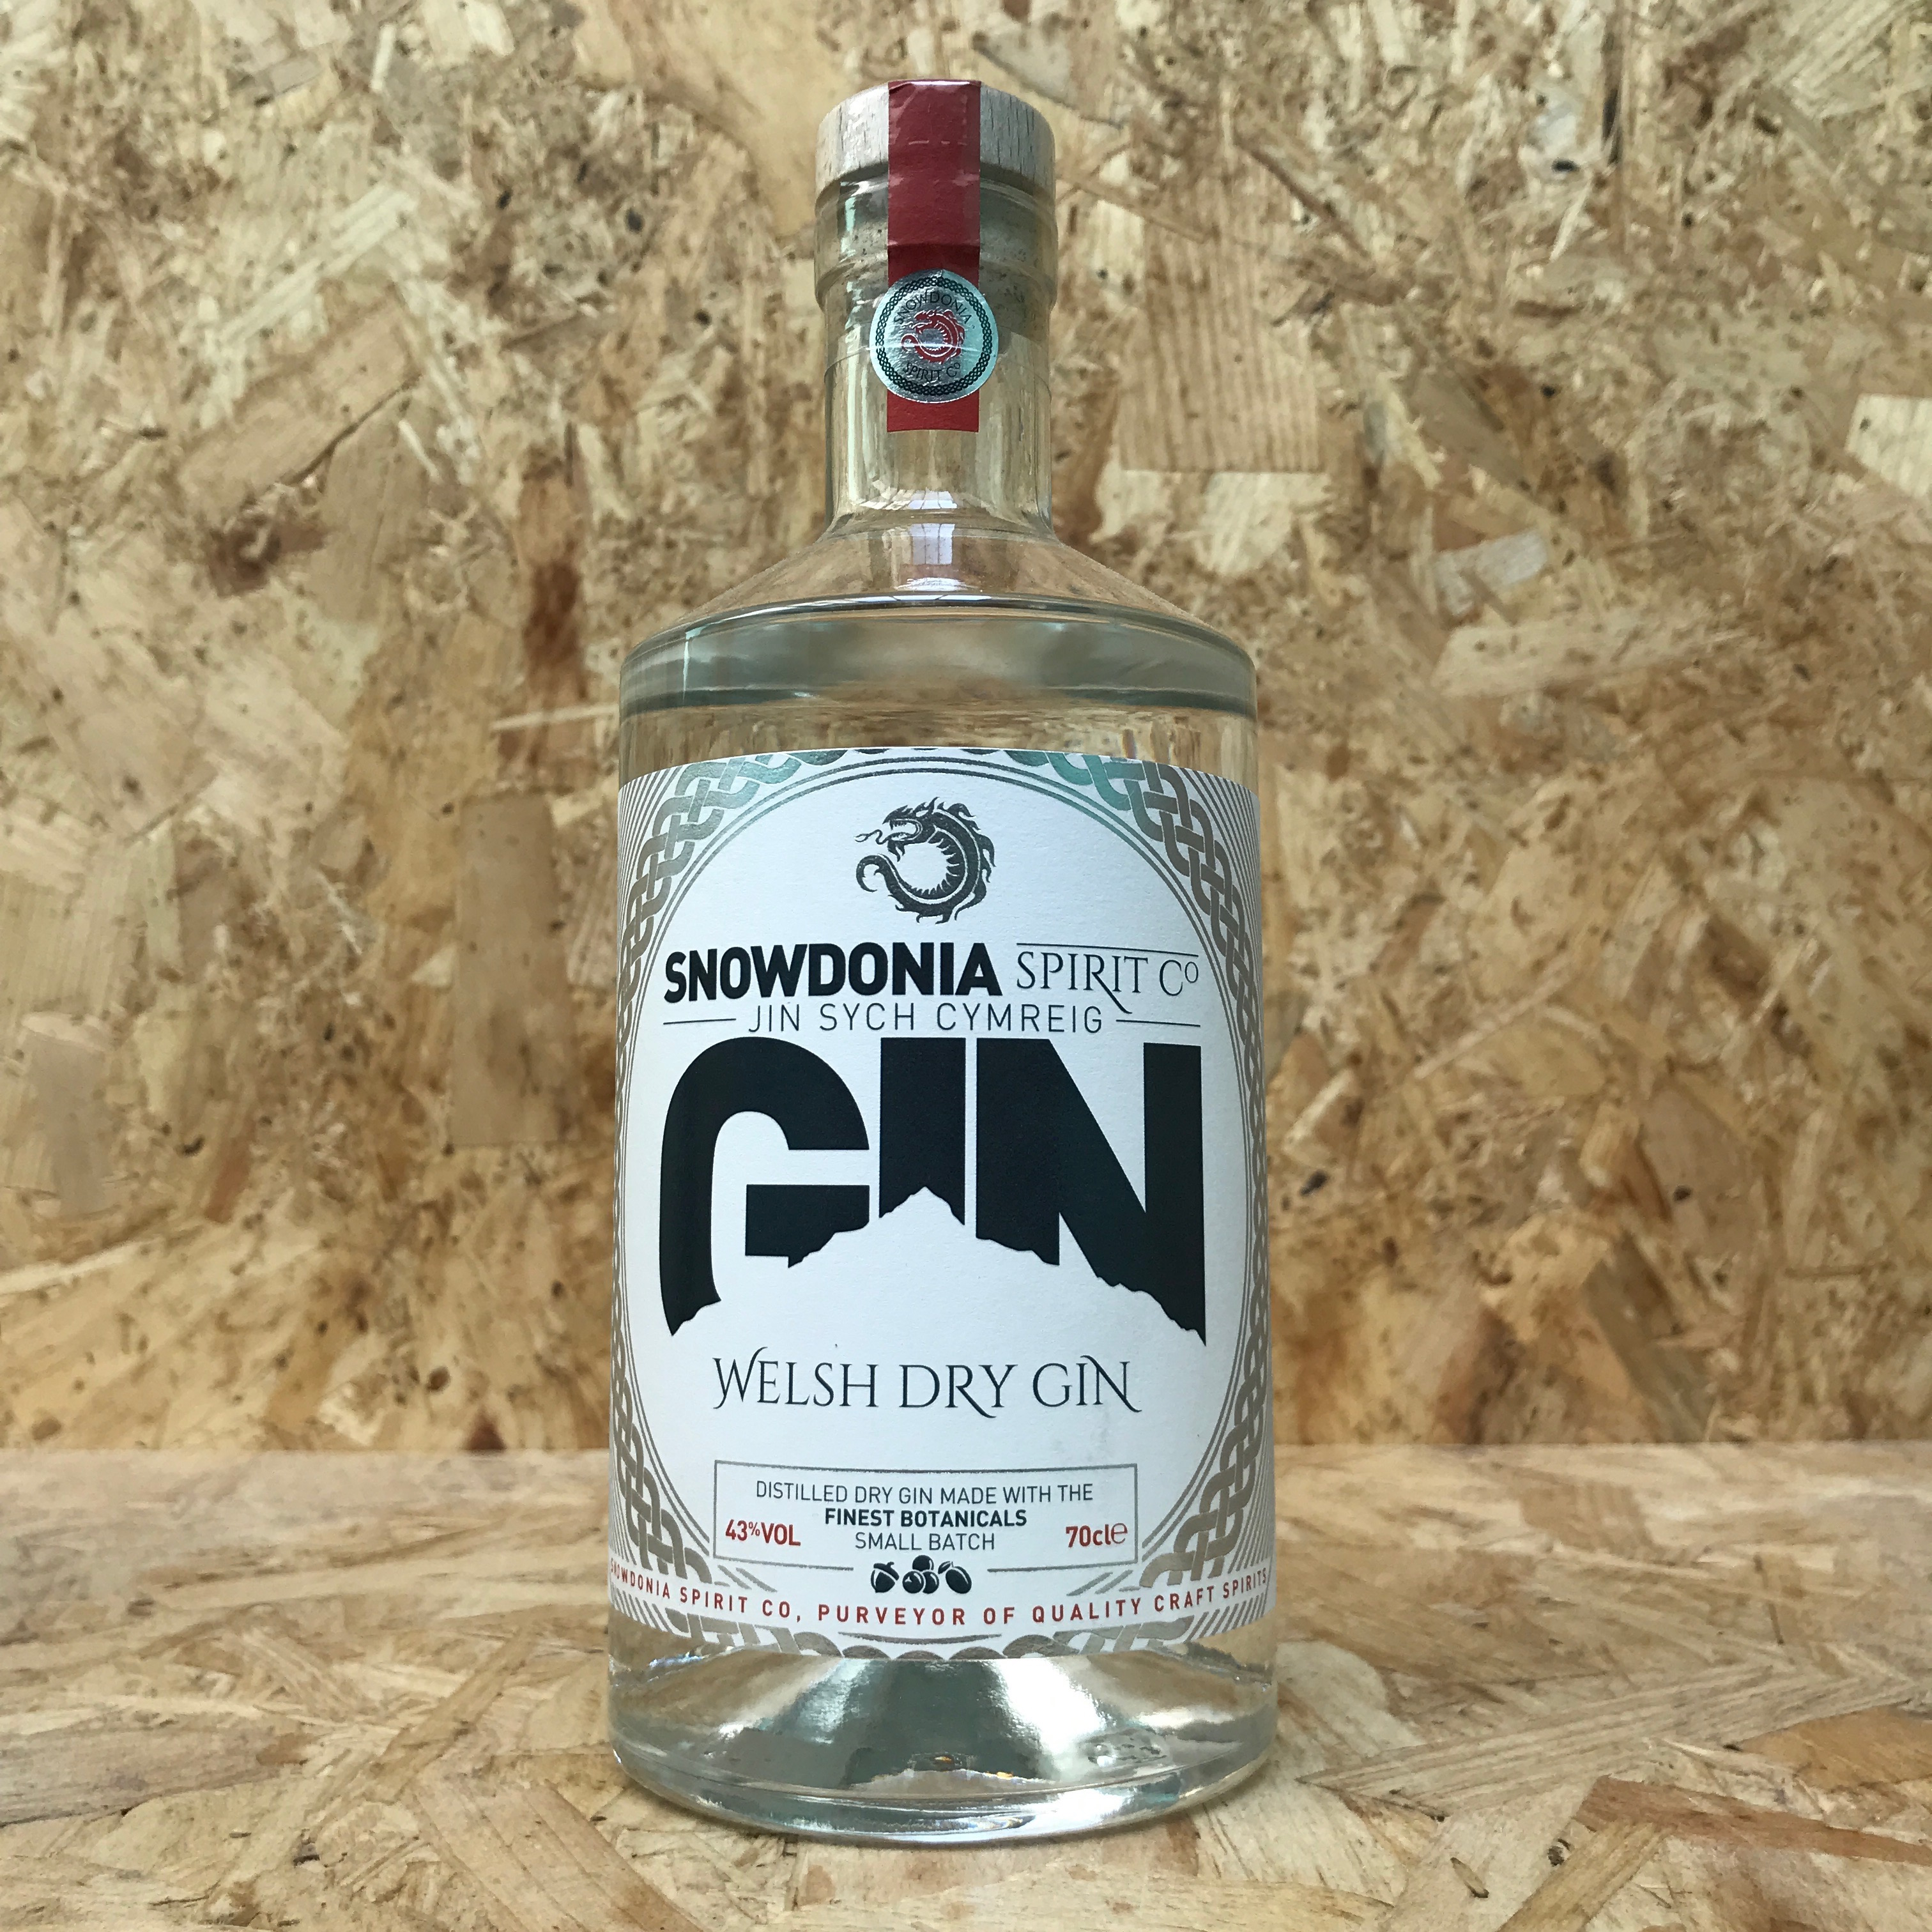 Snowdonia Welsh Dry Gin